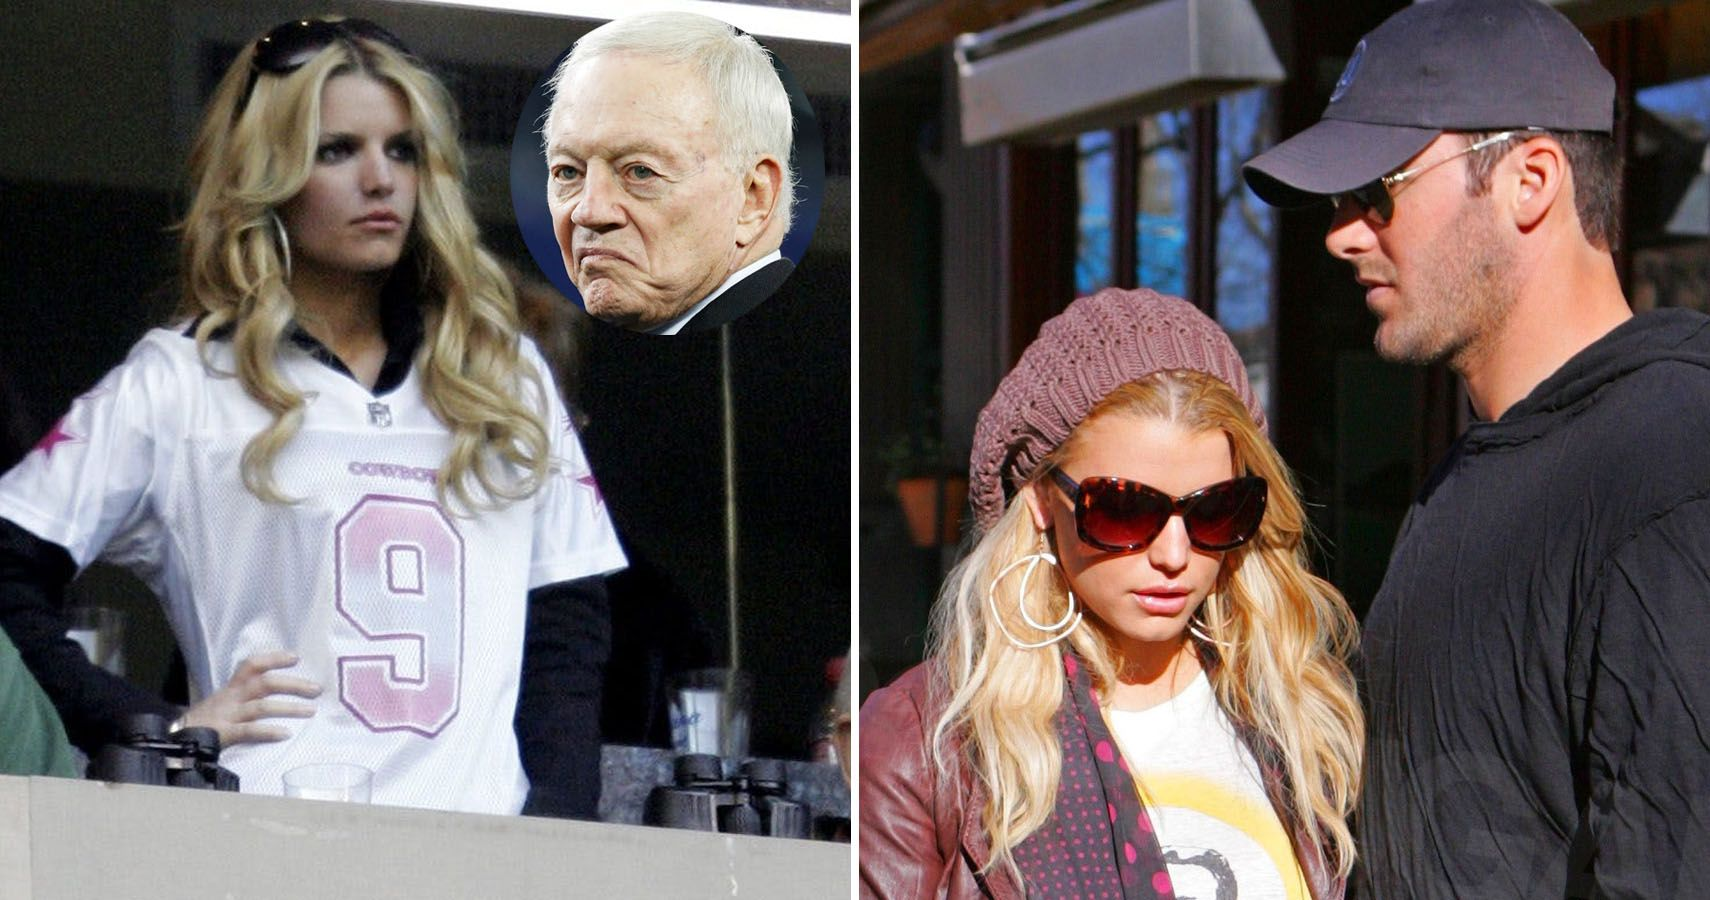 f5605e95a8570 Facts About Tony Romo And Jessica Simpson s Messy Breakup